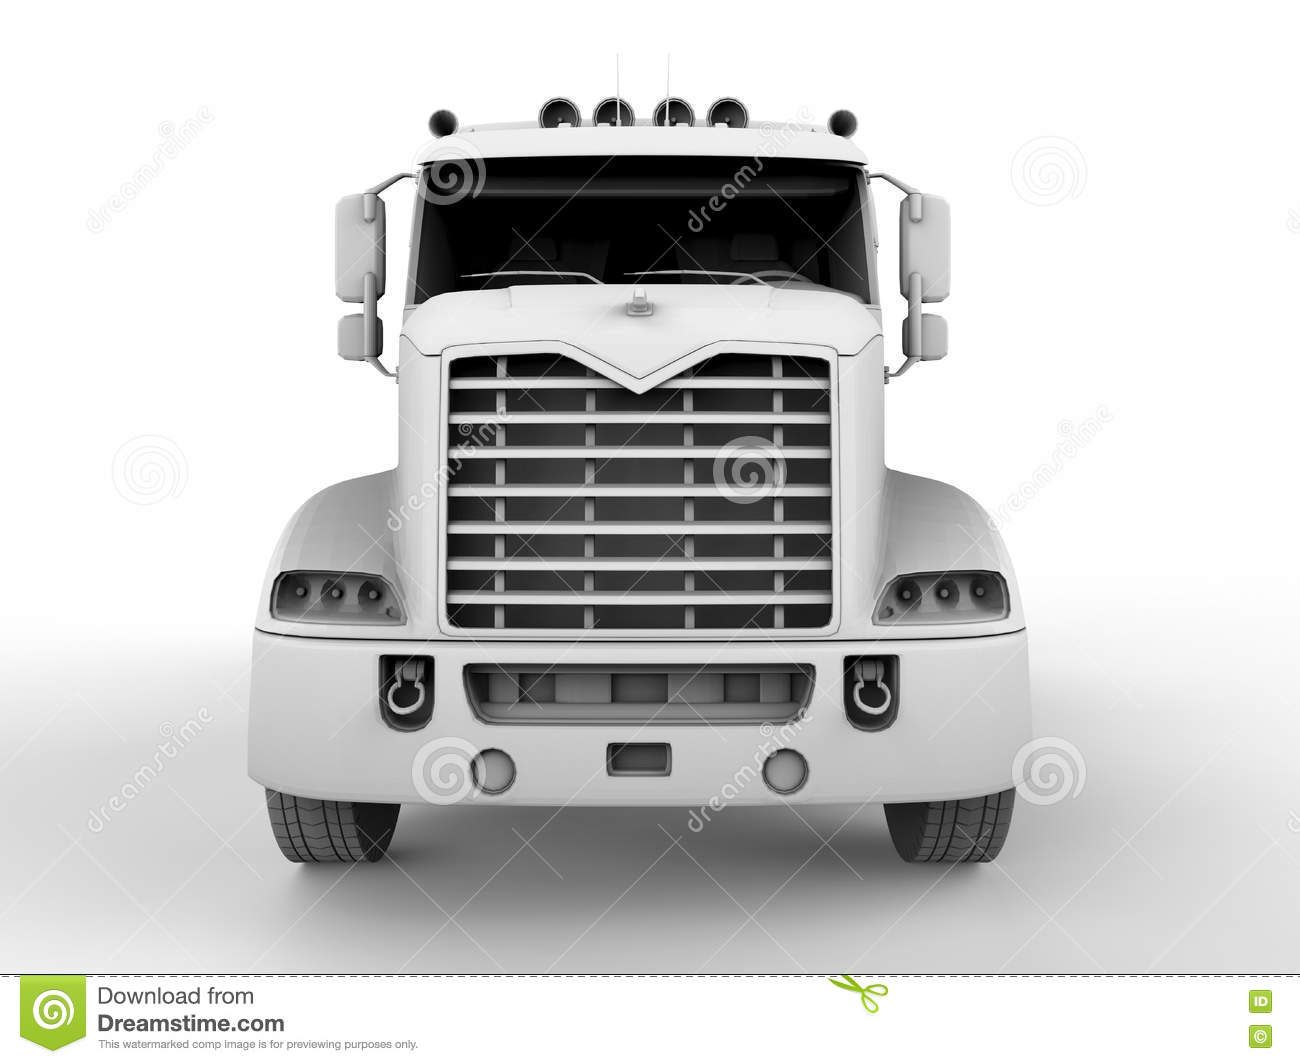 Semi truck front view stock illustration. Illustration of ...